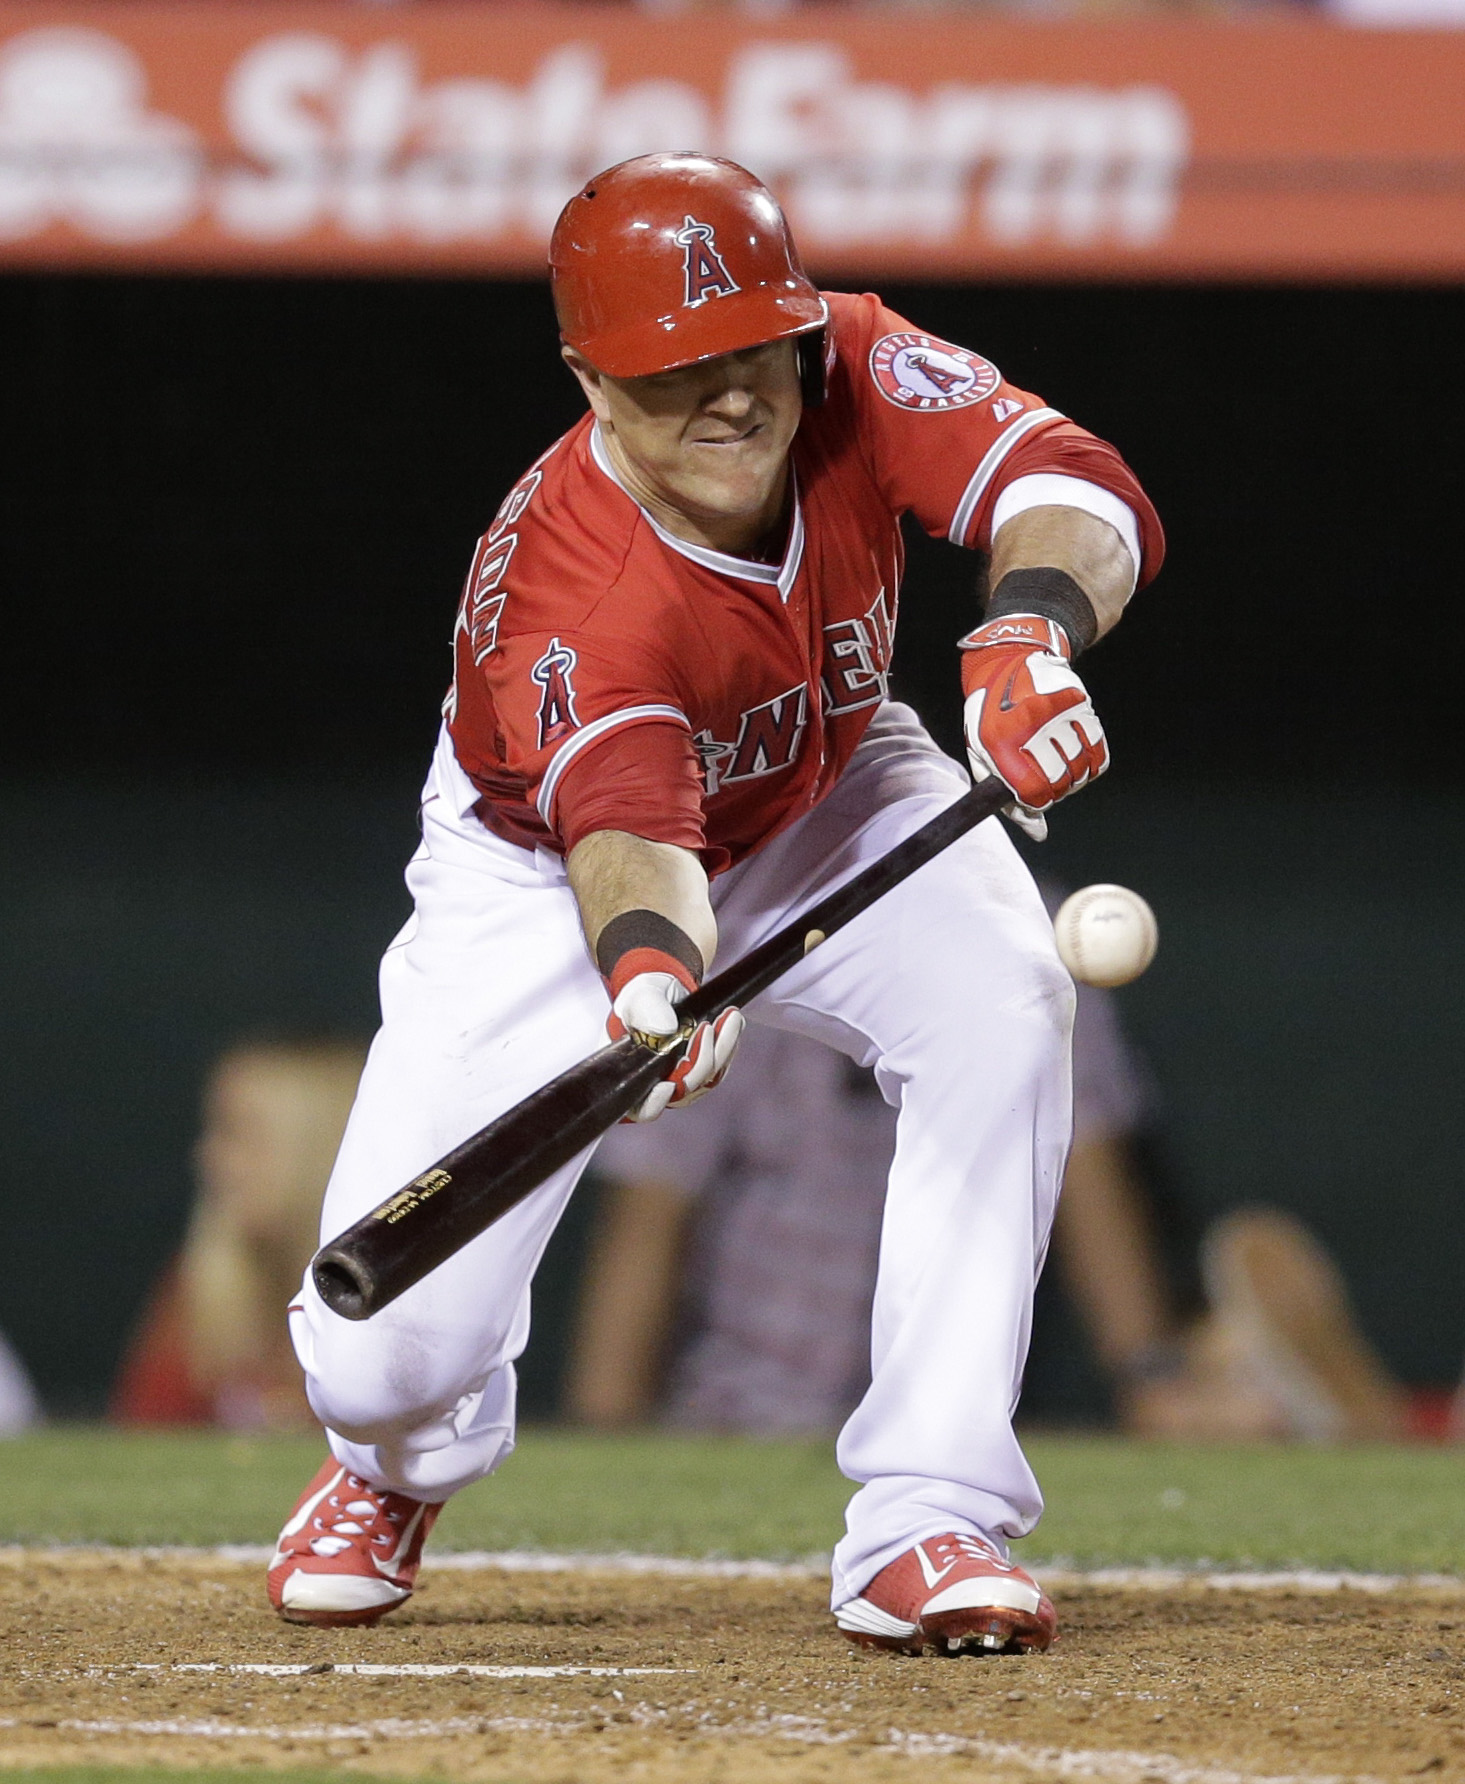 Los Angeles Angels' Daniel Robertson hits a sacrifice bunt during the eighth inning of a baseball game against the Houston Astros, Monday, June 22, 2015, in Anaheim, Calif. Erick Aybar scored on the play. (AP Photo/Jae C. Hong)